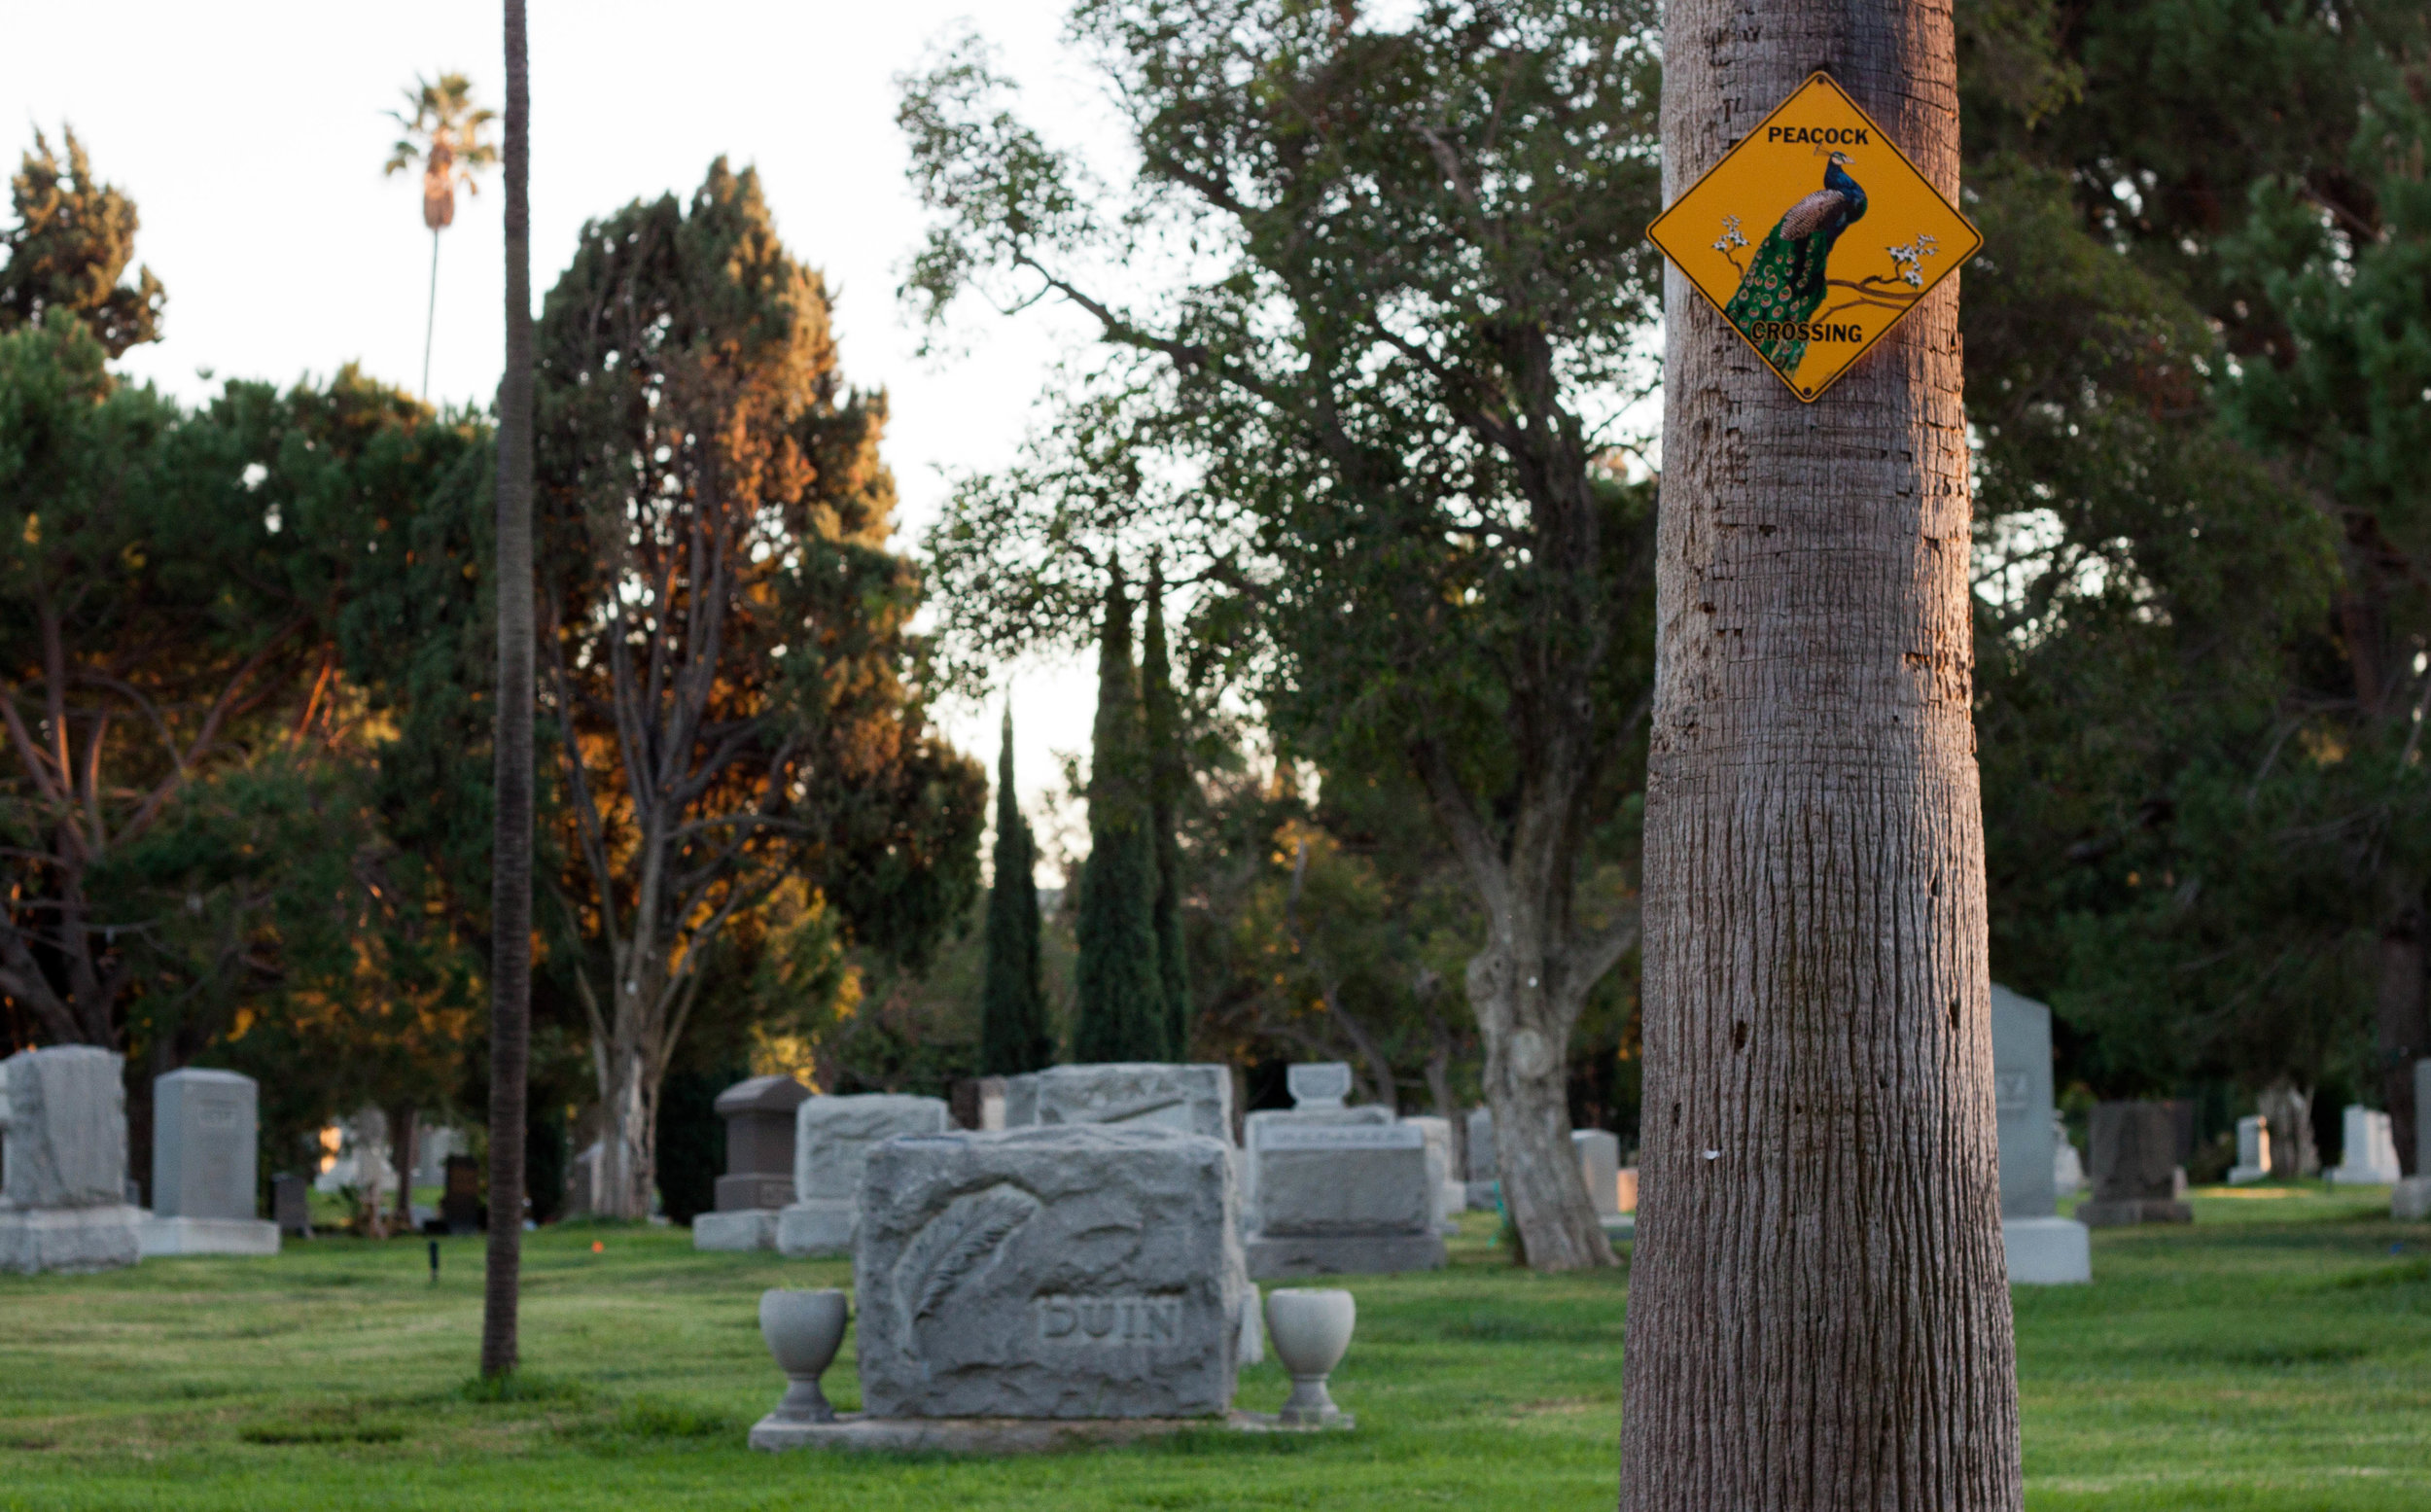 A sign marks a peacock crossing path at  Hollywood Forever Cemetery  in Los Angeles, 2017.